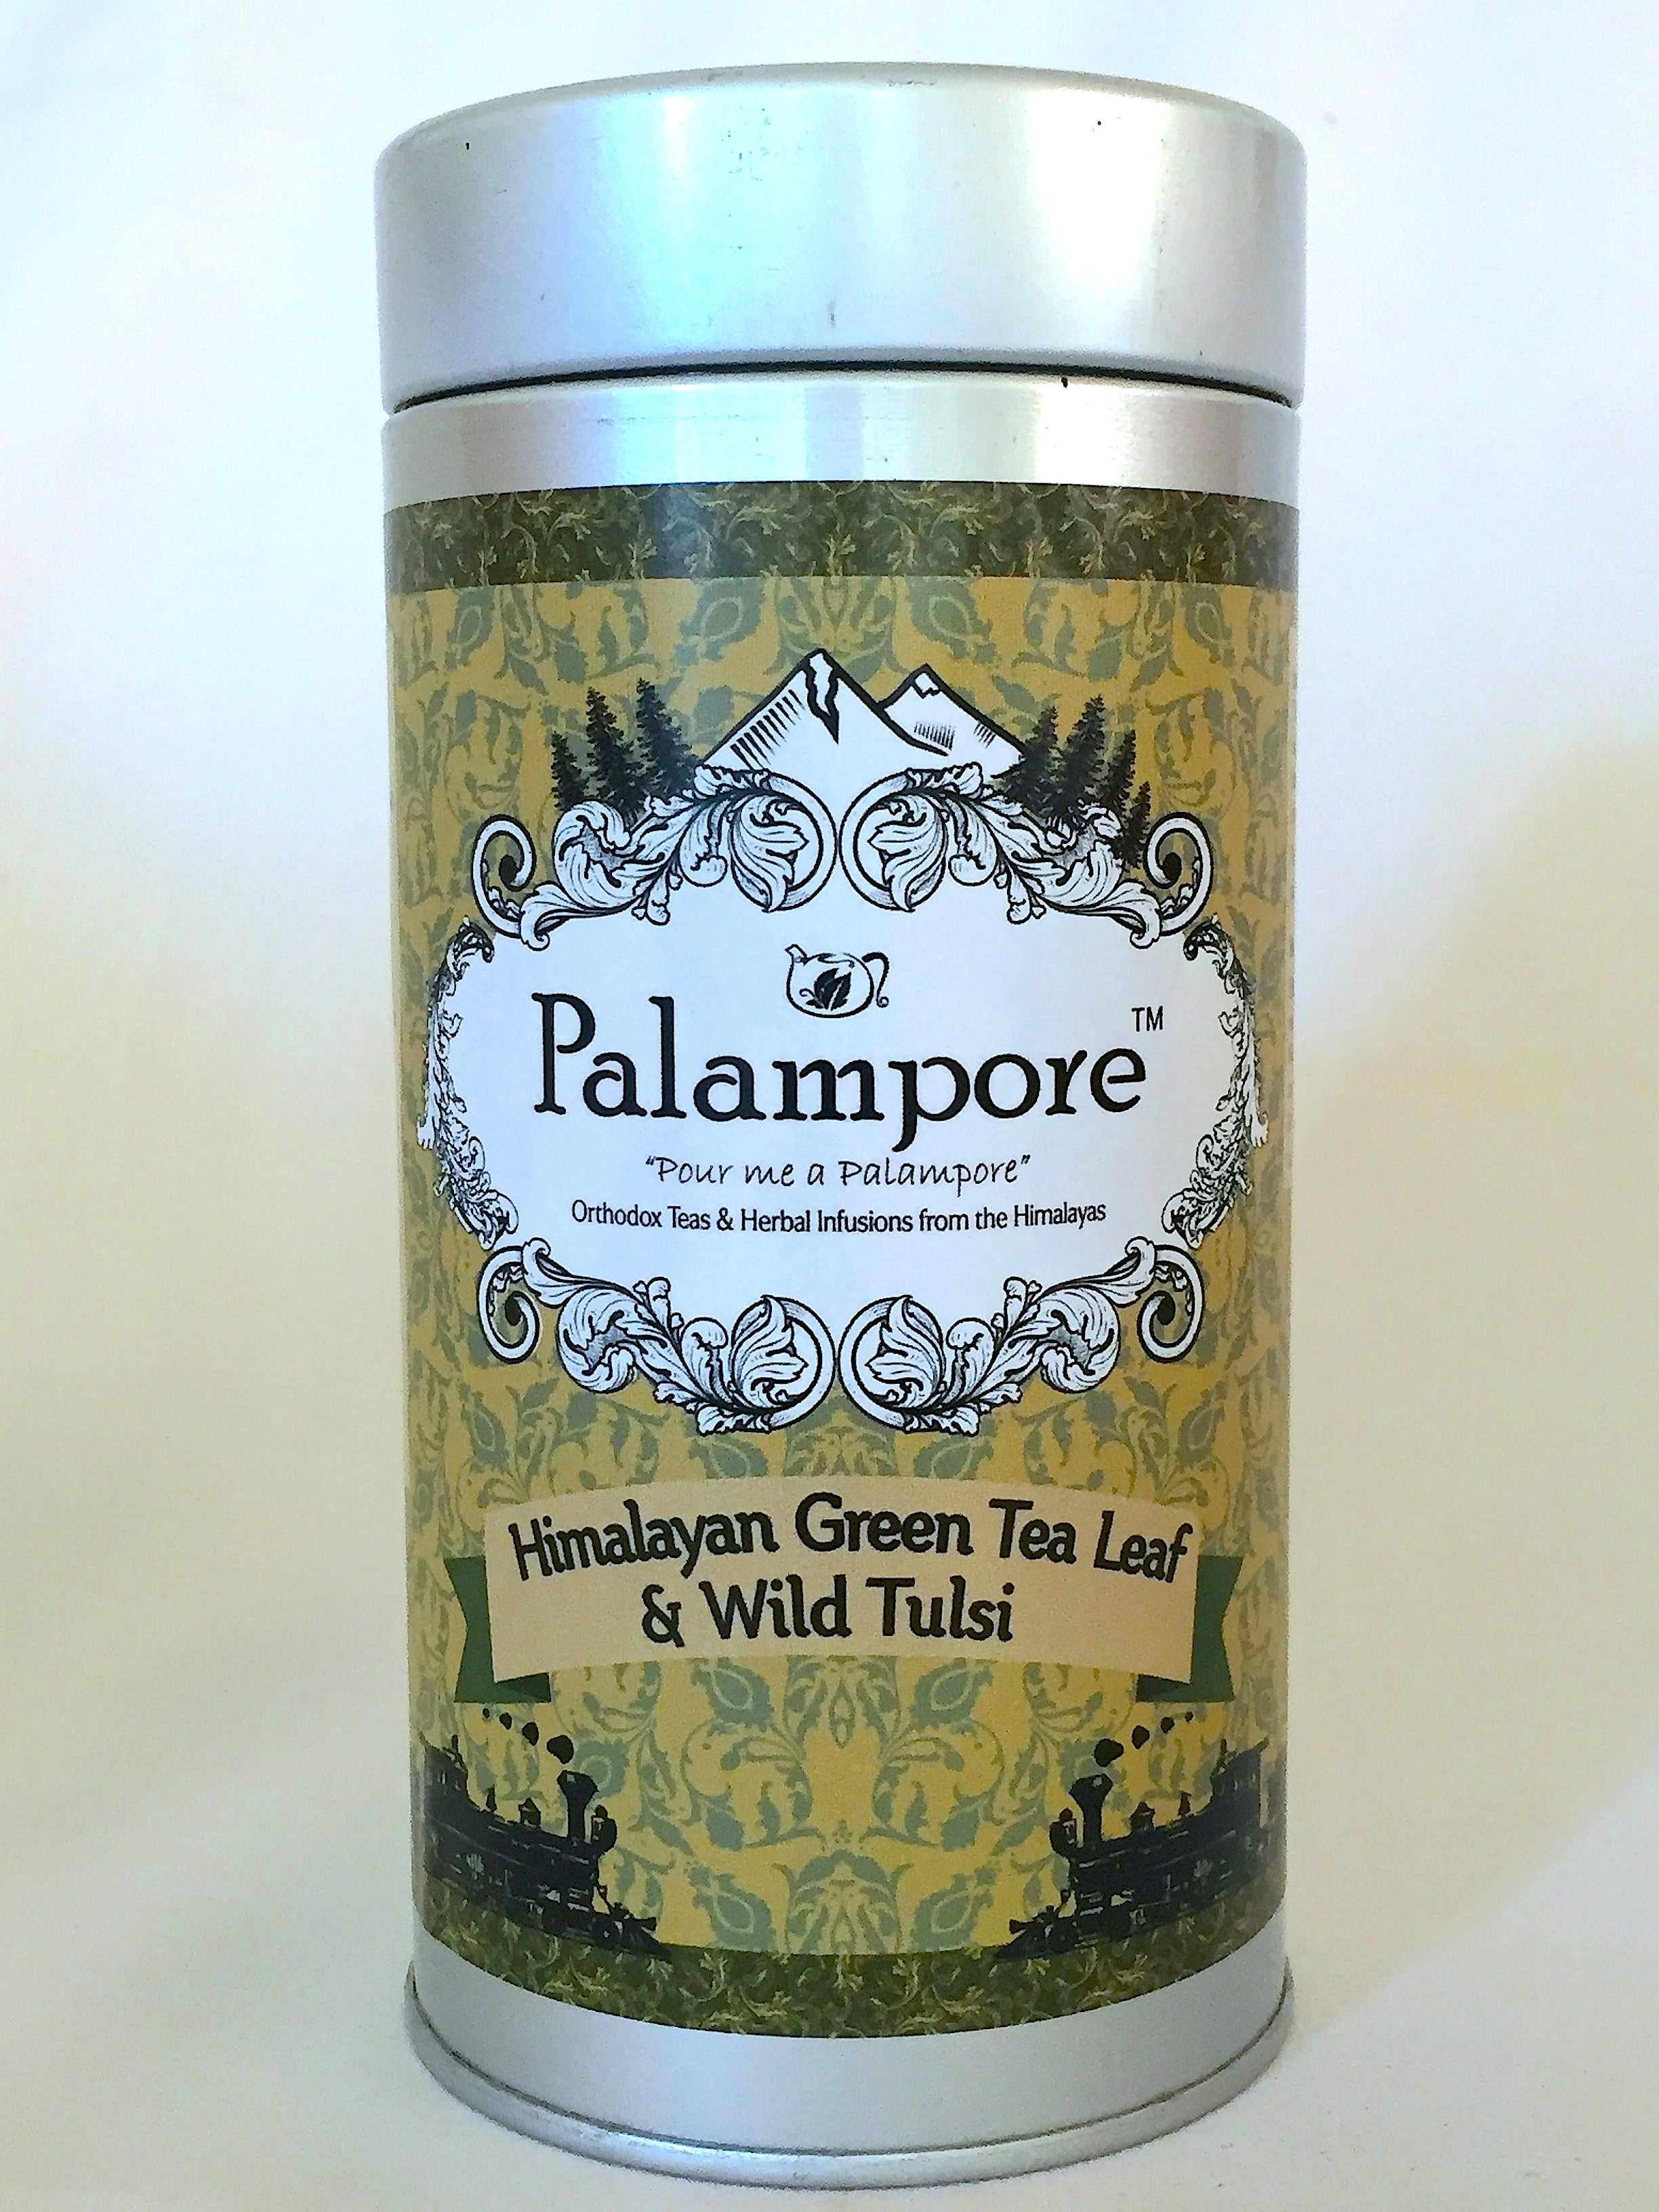 Wild Tulsi Green Tea. Himalayan Gourmet Green Teas, Long leaf, Whole leaf teas, Fruit flavoured. No Added Sugar